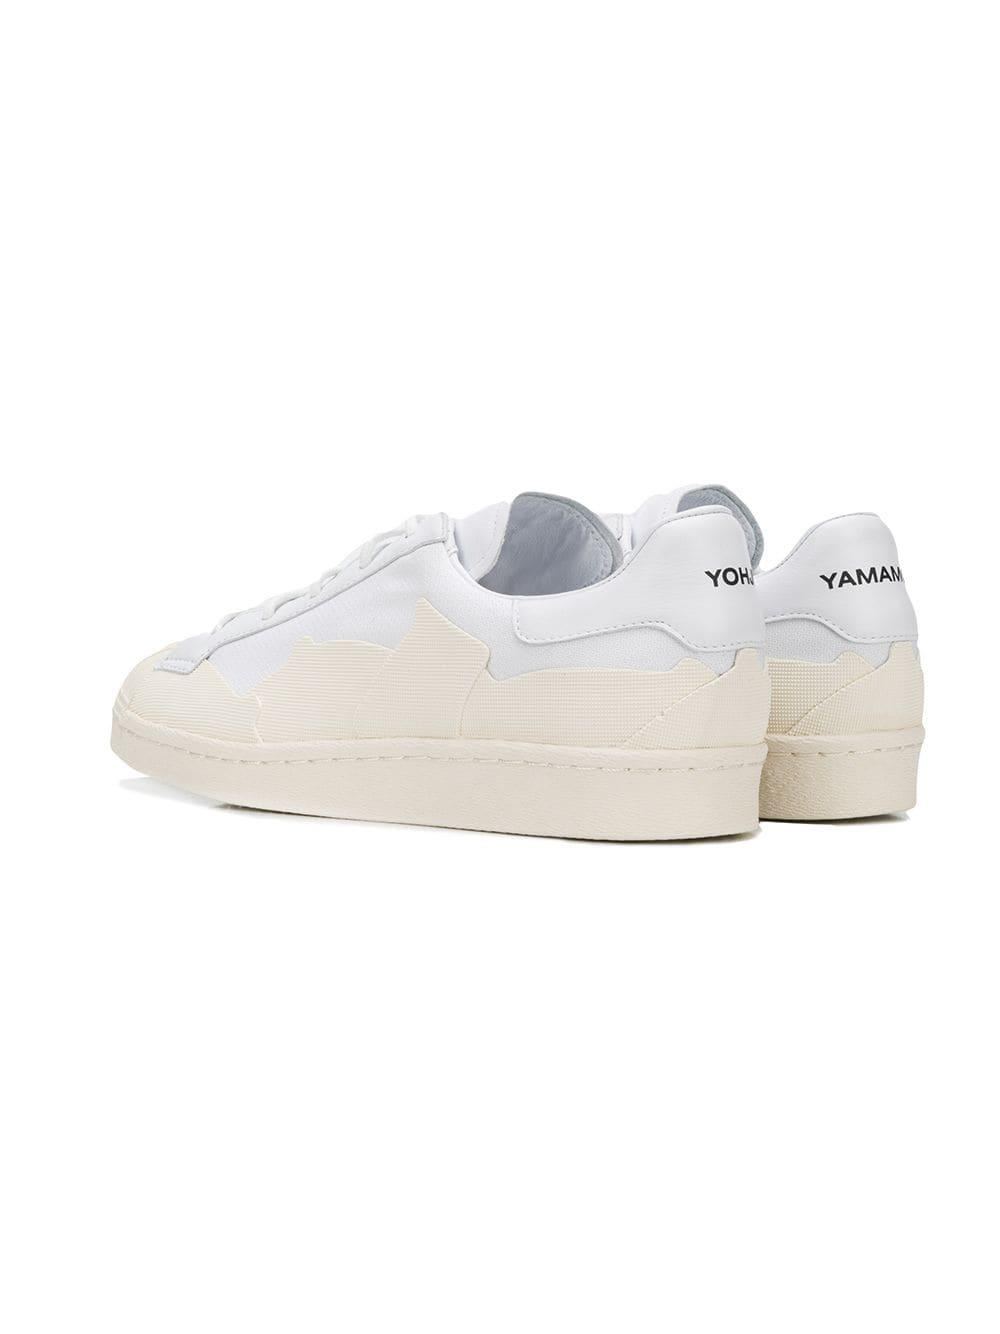 ecb5d4aa5bf1 Lyst - Y-3 Super Takusan Canvas Trainers in White for Men - Save 21%